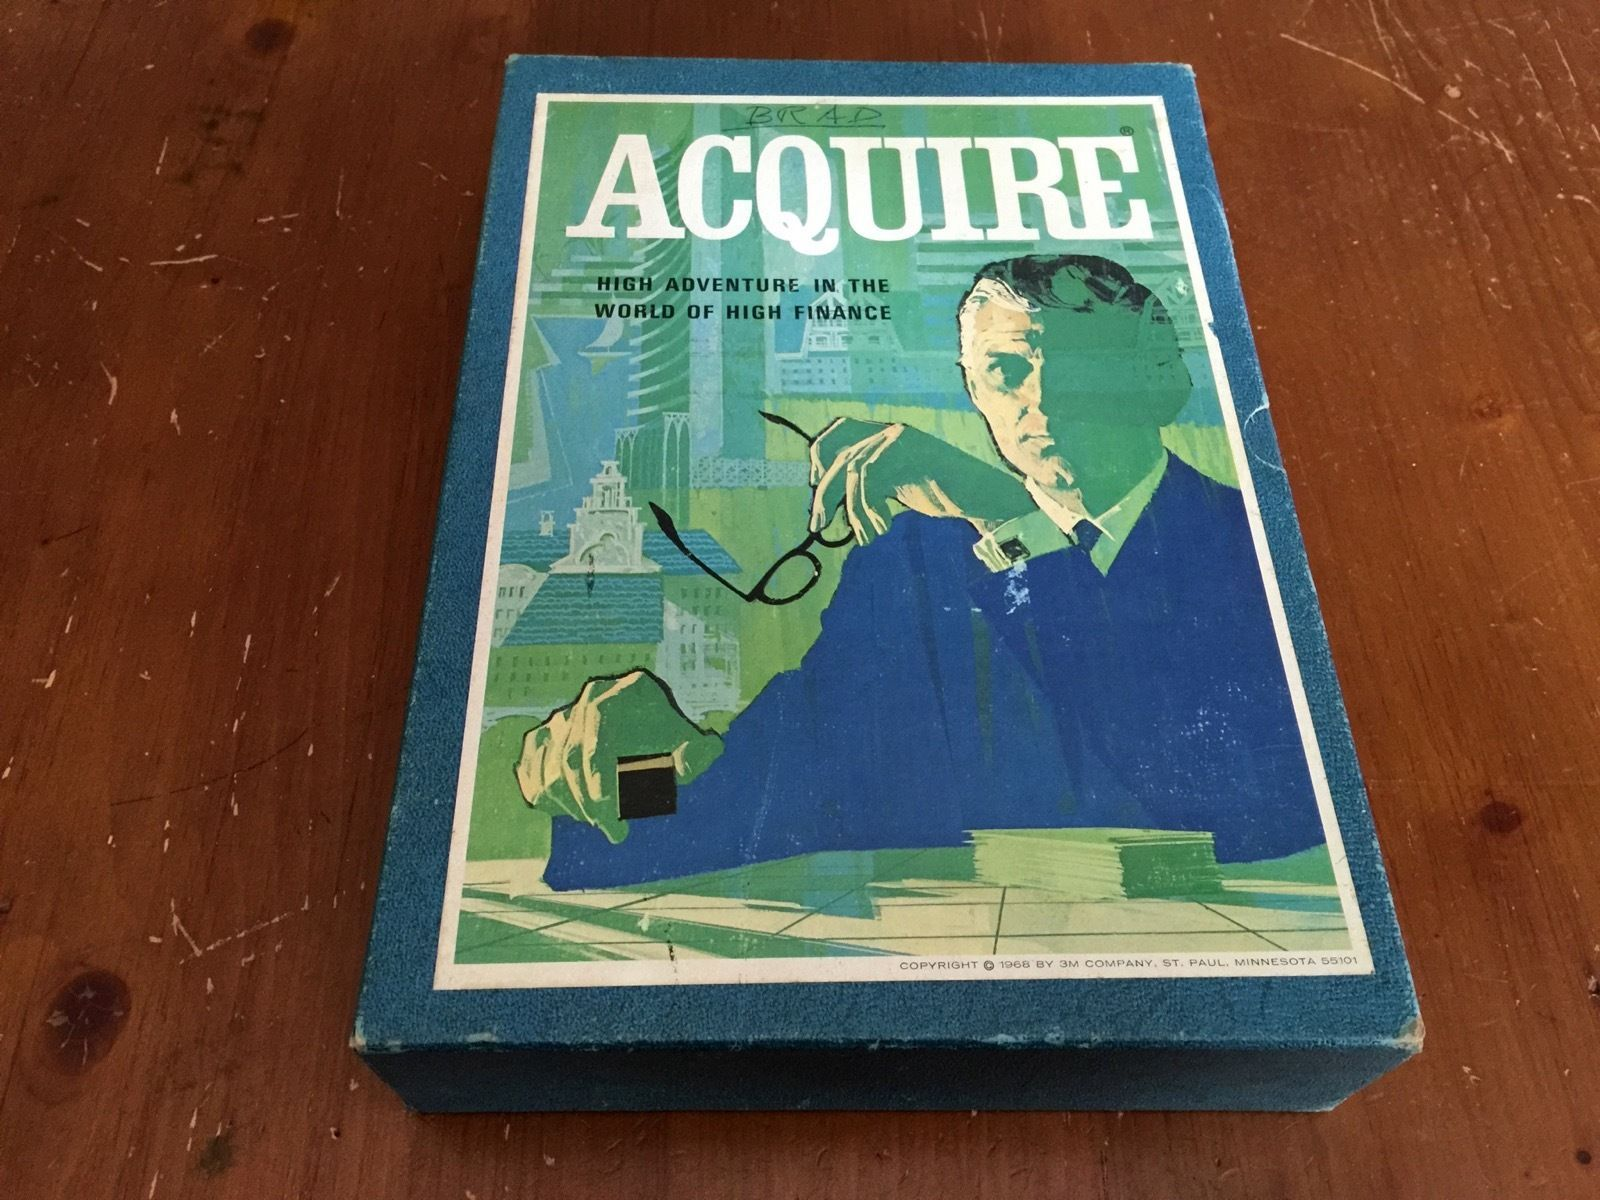 Vintage 1968 Acquire Bookshelf Financial Board Game by 3M - Complete Game